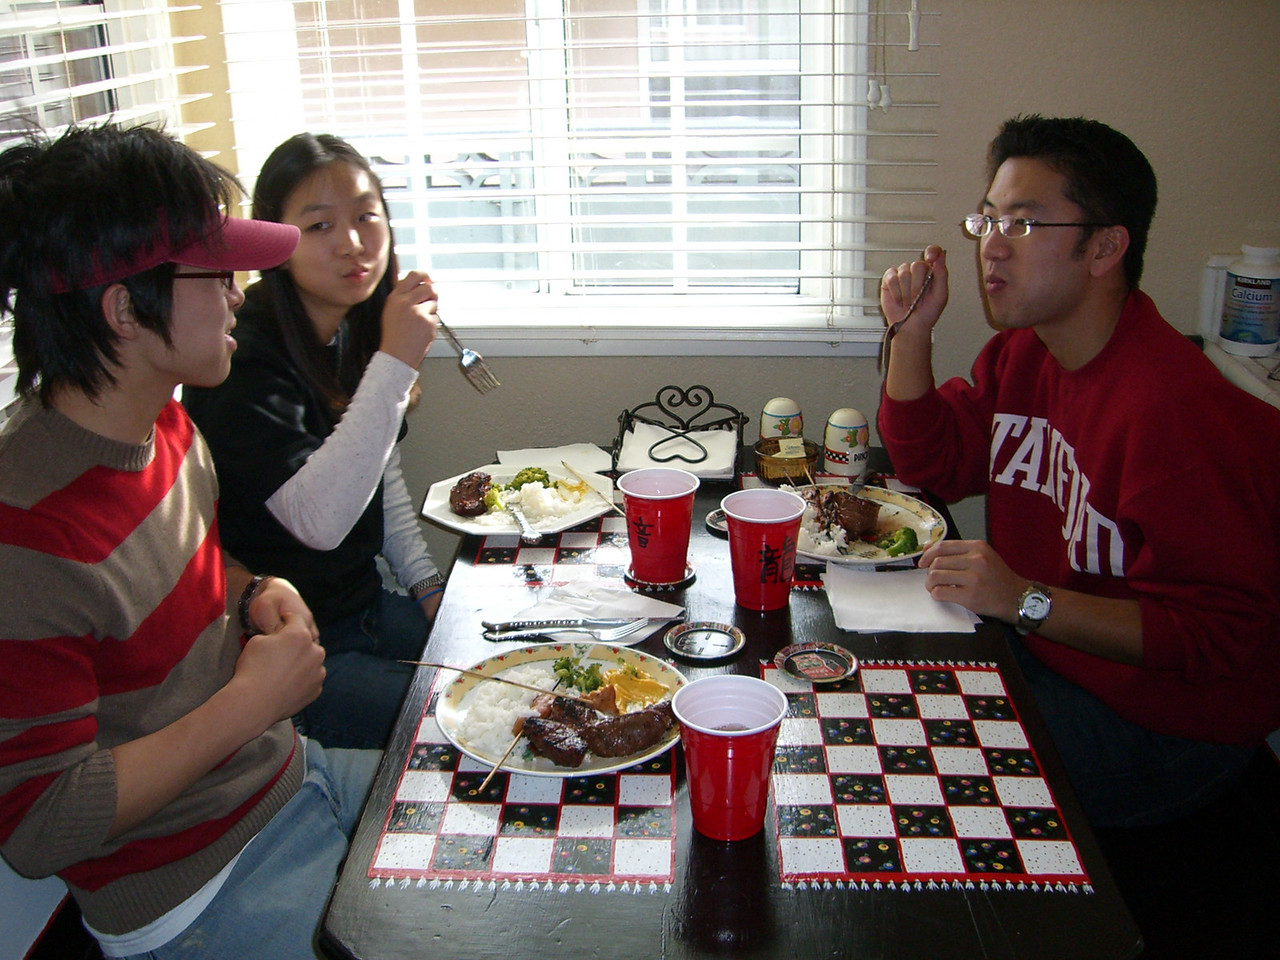 2005 12 18 Sun - Lake Ave Church - Hyungsoo Kim, Jenny Alyono, & Bryan Lung grub